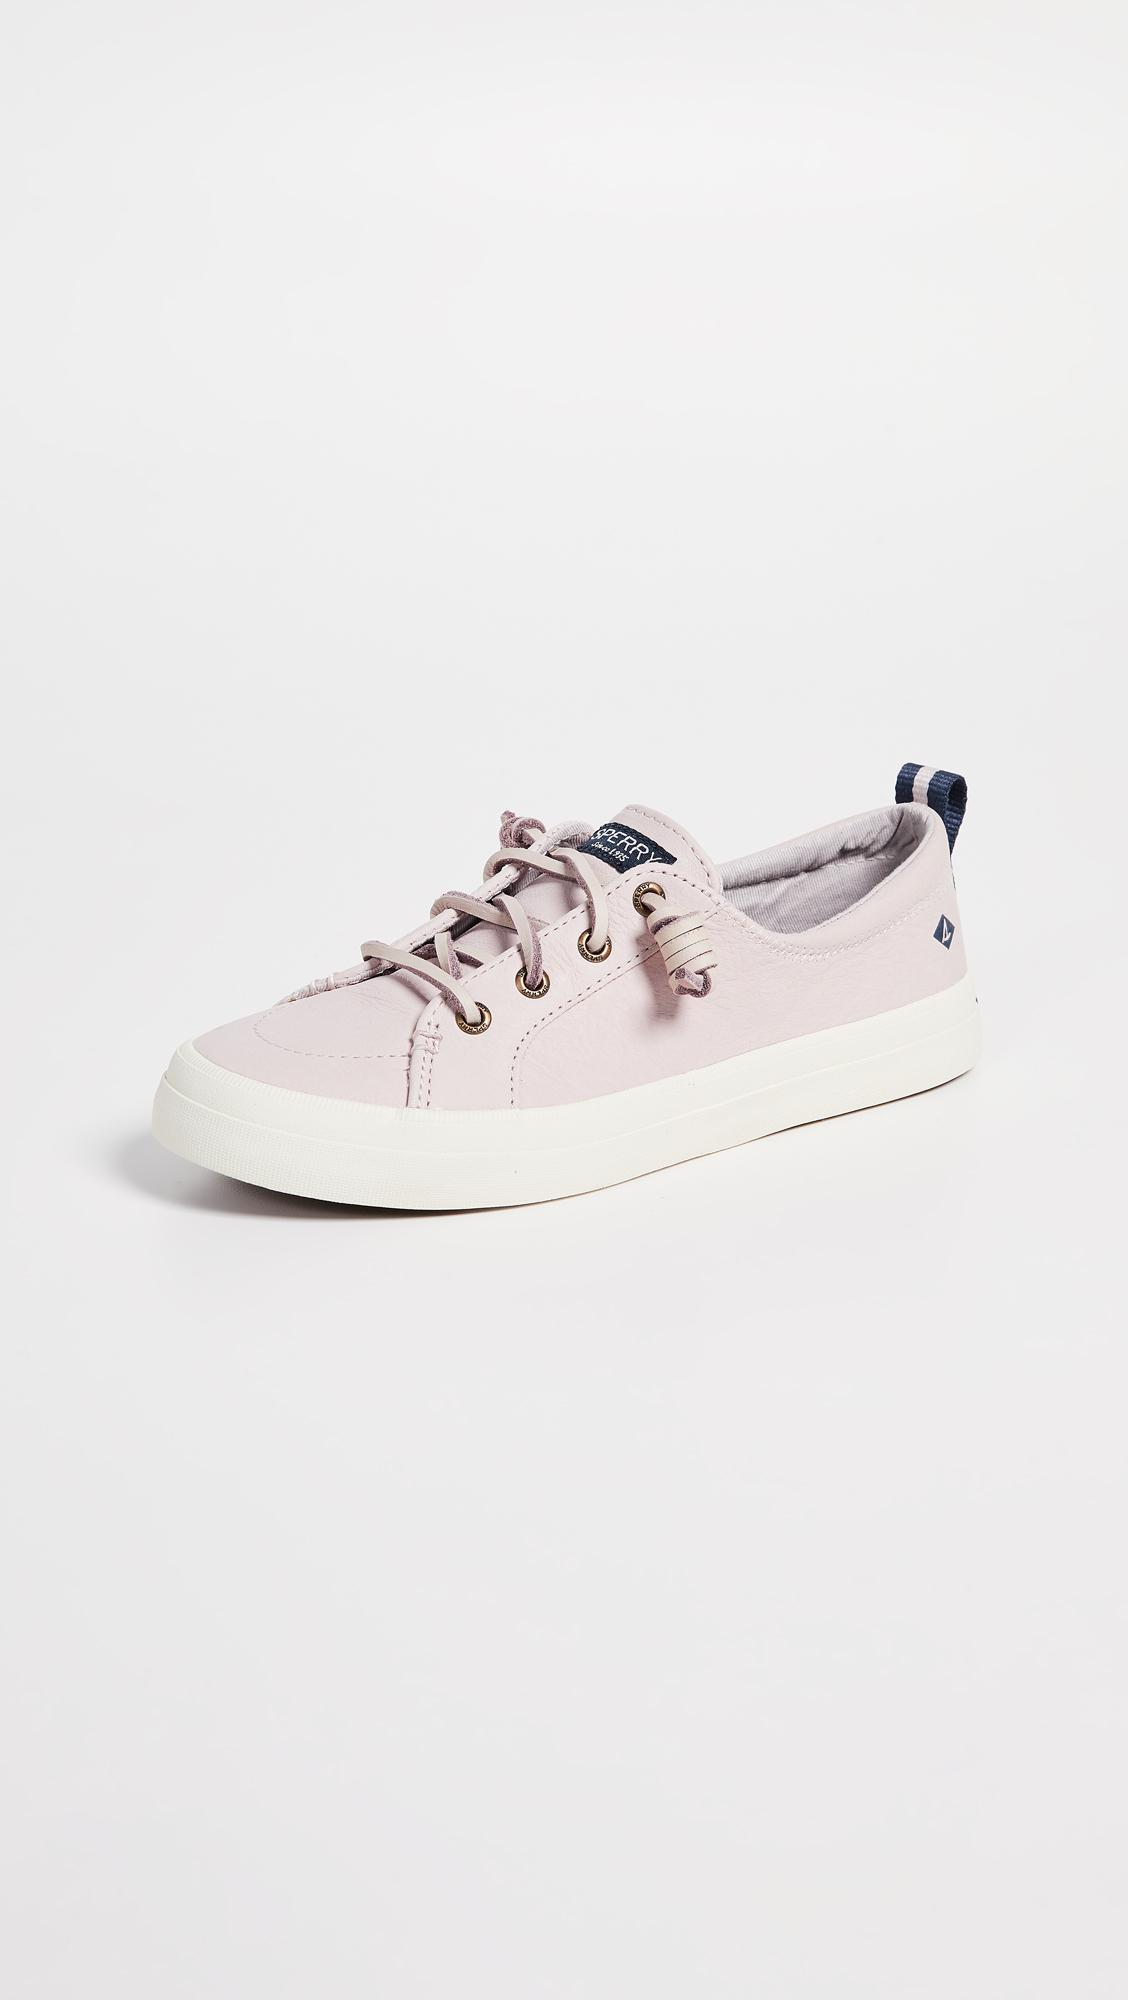 sperry women's crest vibe washable leather sneaker